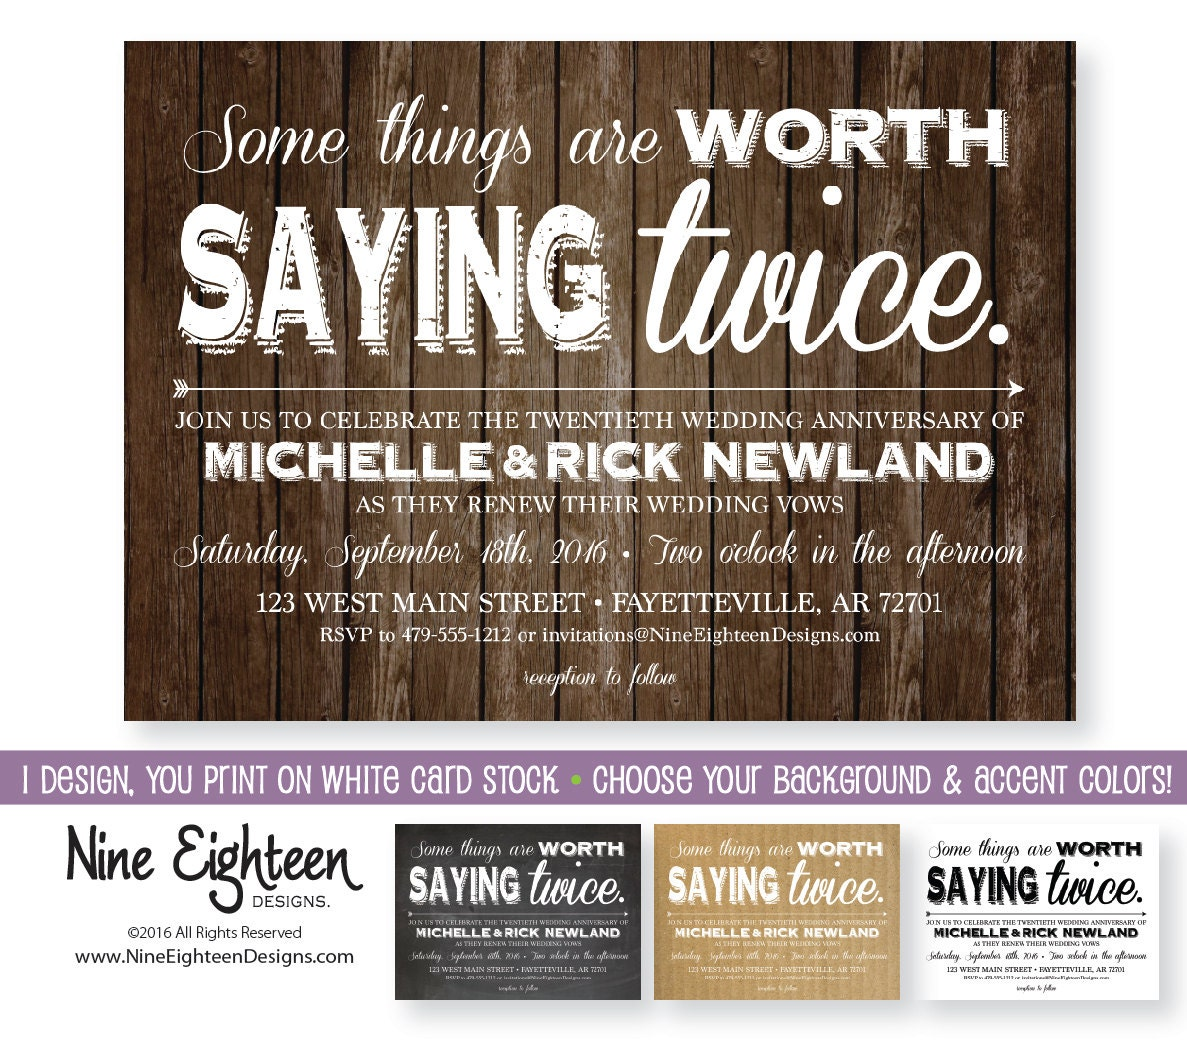 Wedding Vow Renewal Invitations: Vow Renewal Invitation. PDF & JPG By NineEighteenWeddings